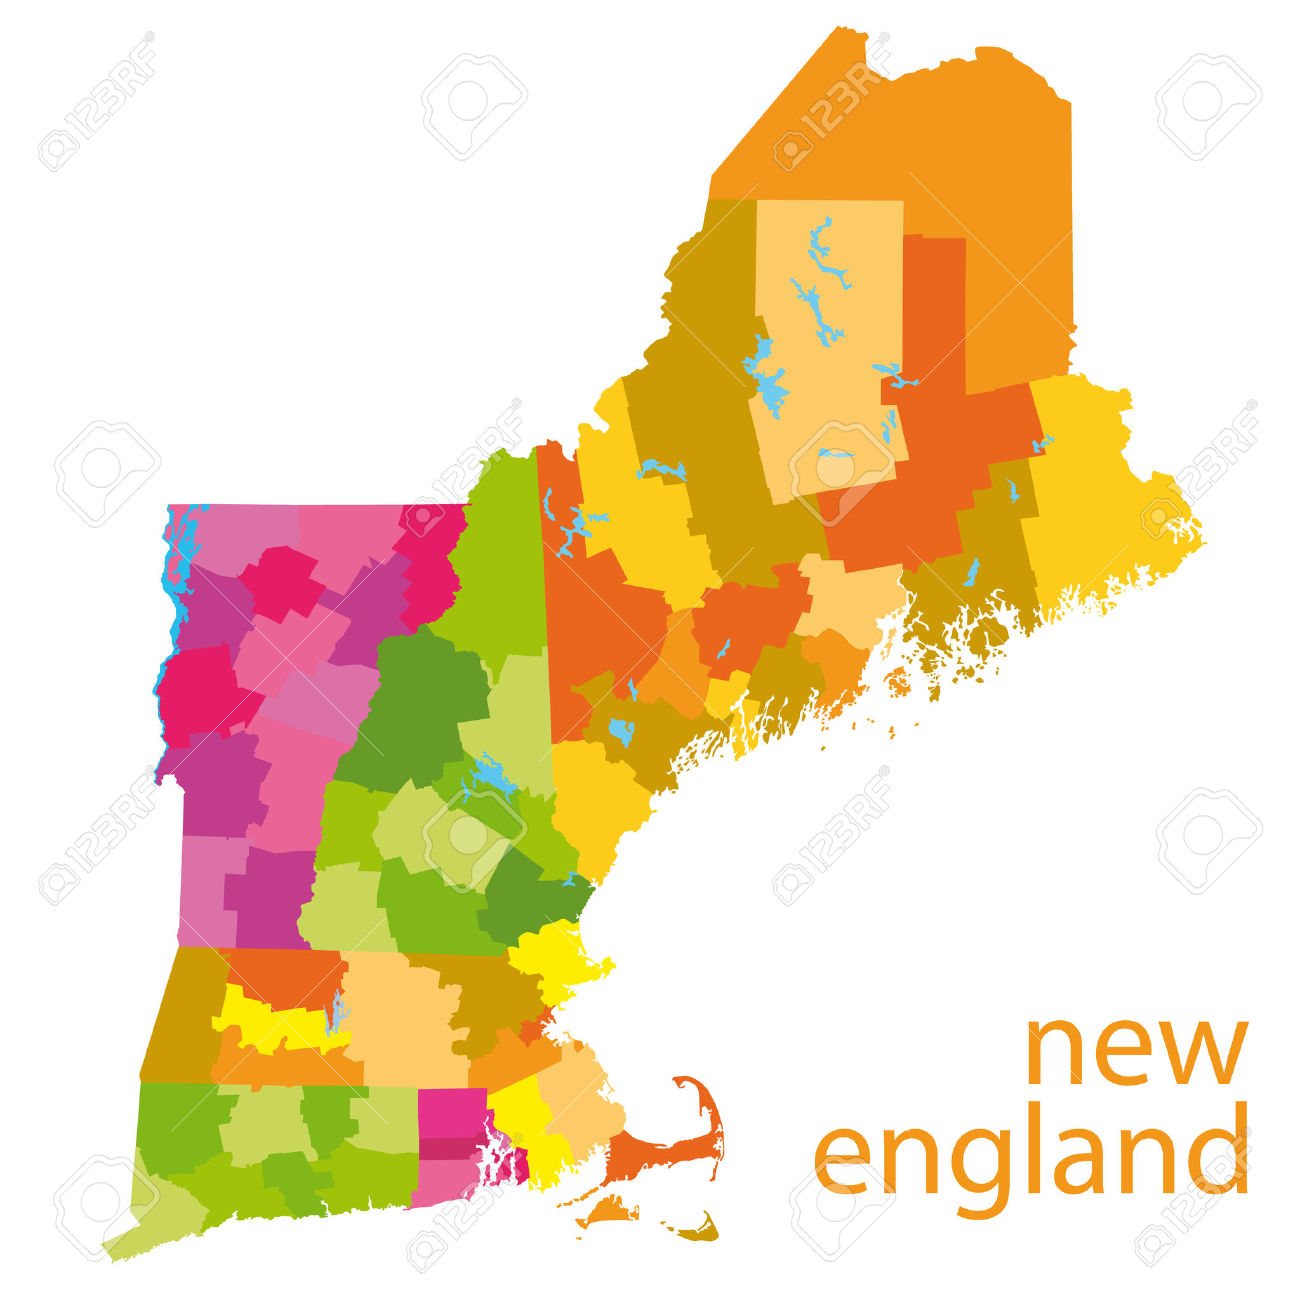 New England clipart #11, Download drawings